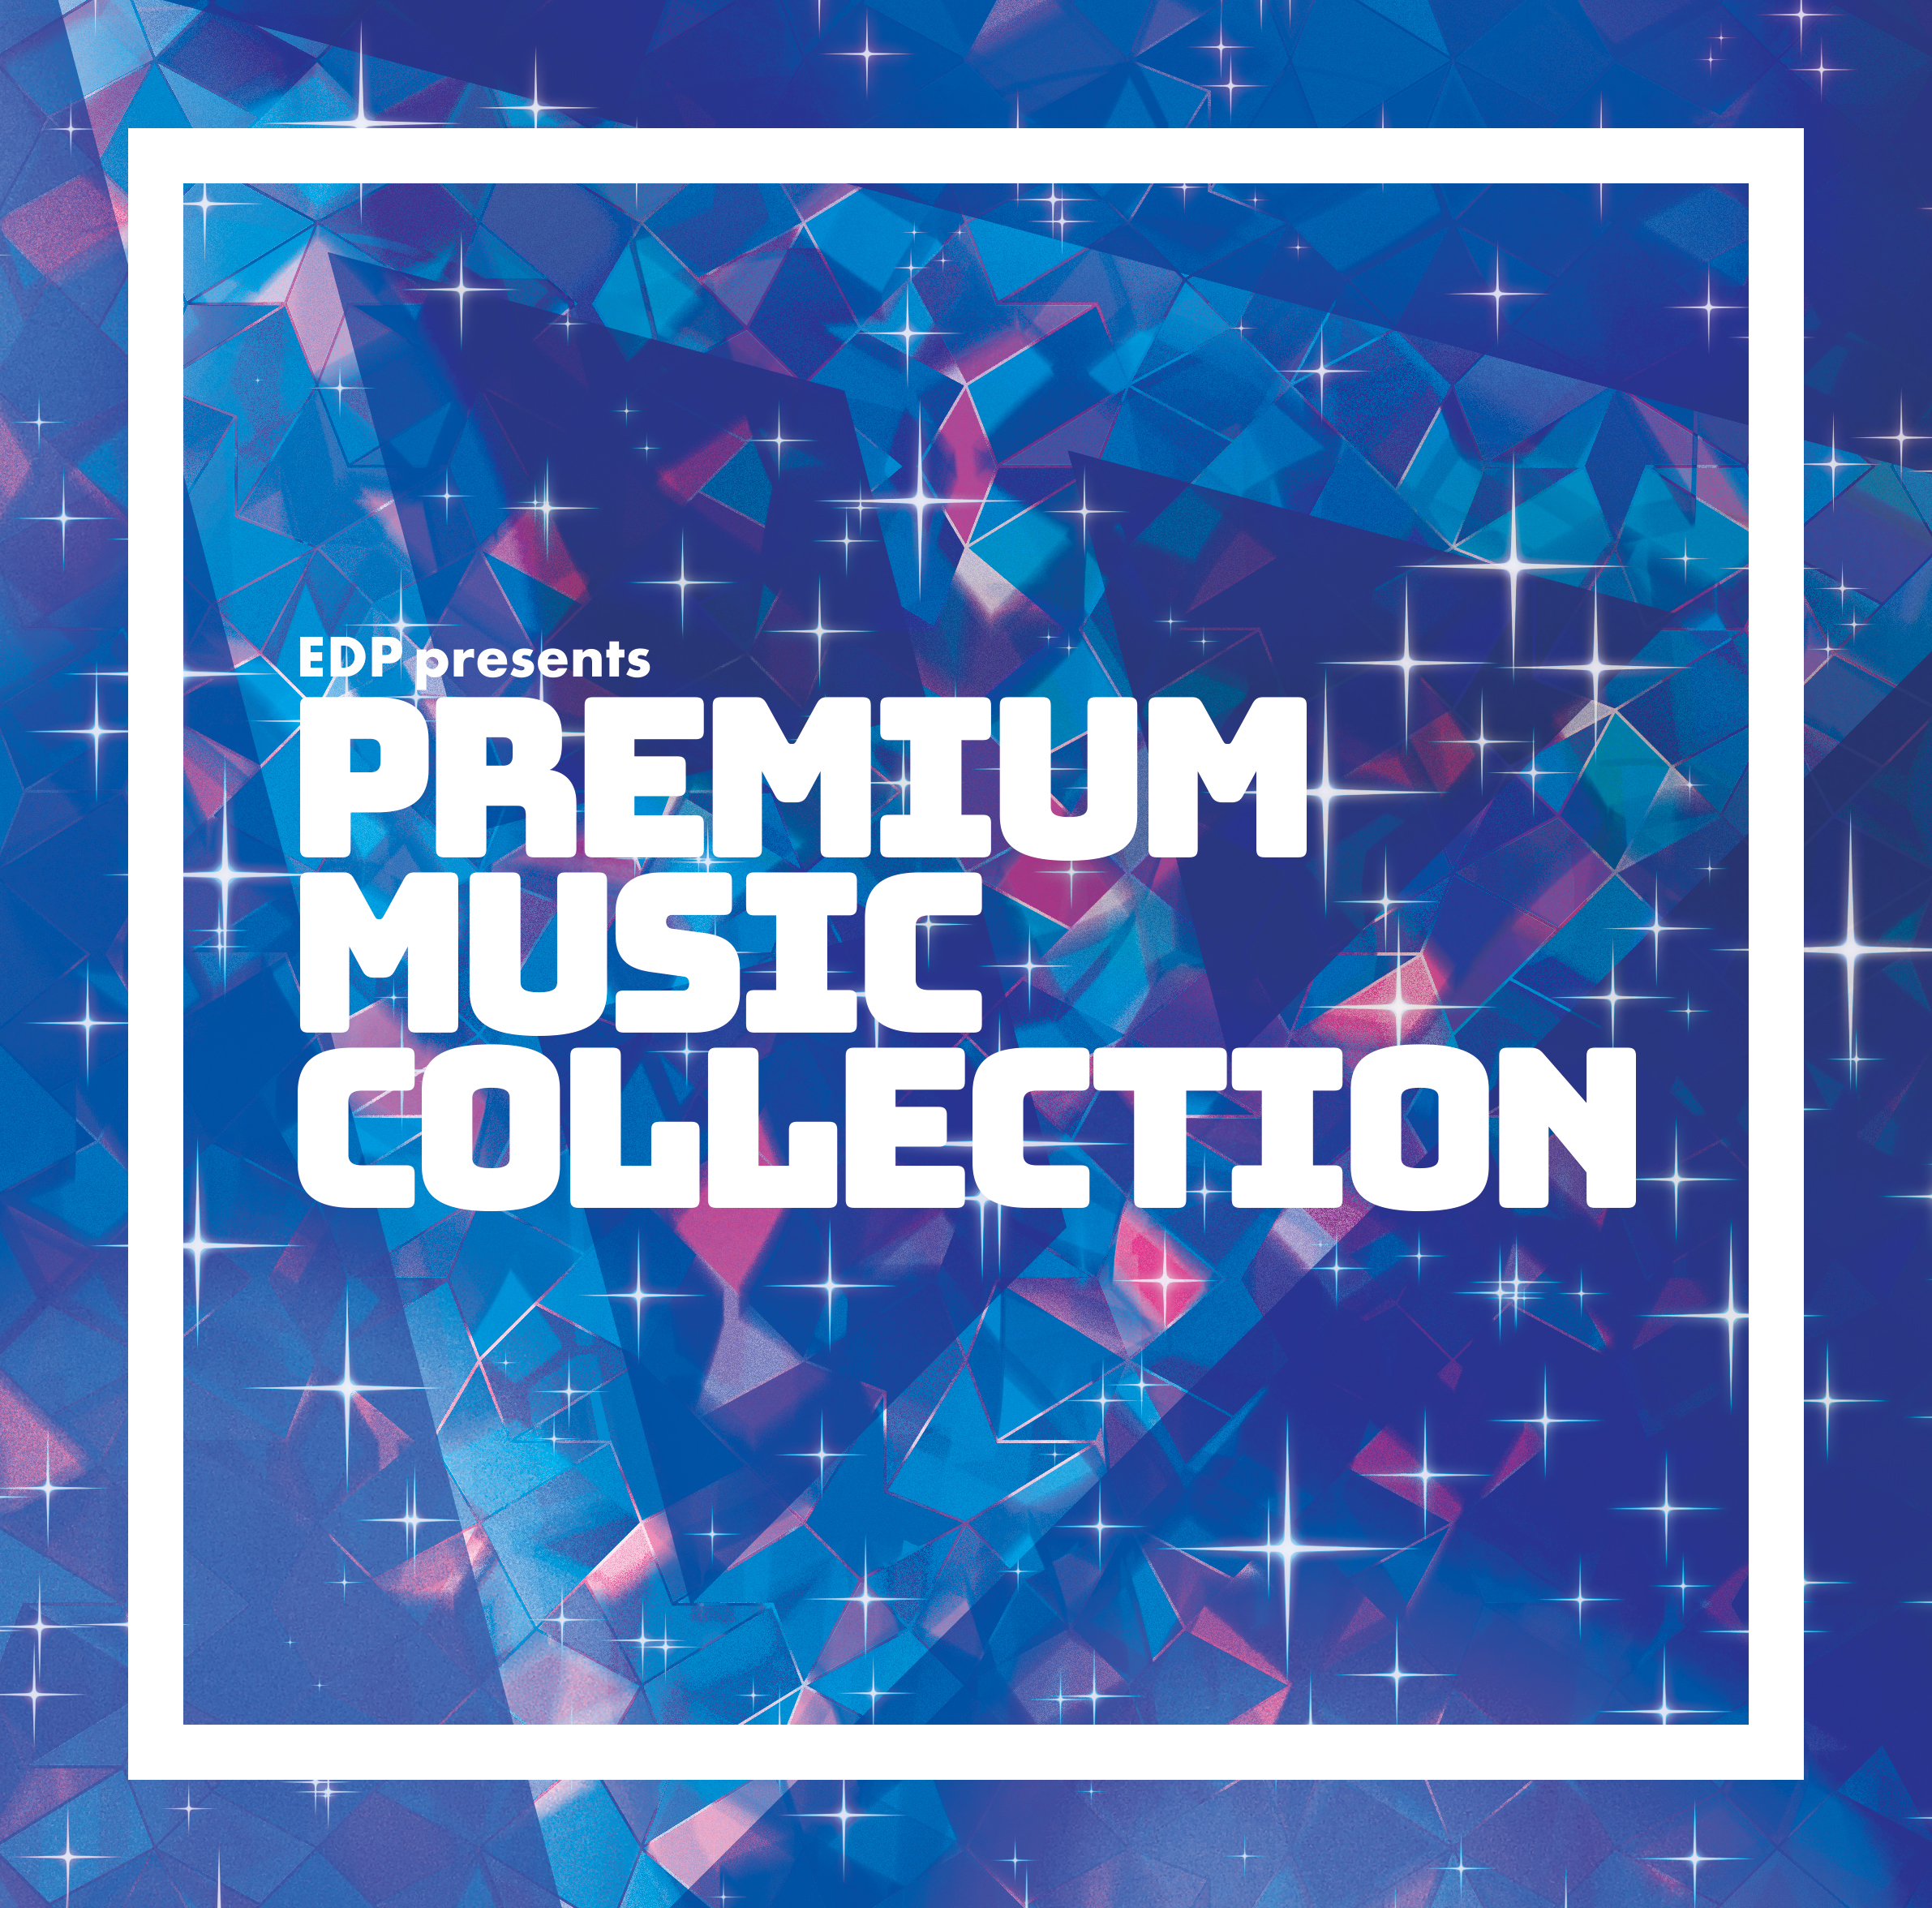 EDP presents Premium Music Collection Release in March17th 2021